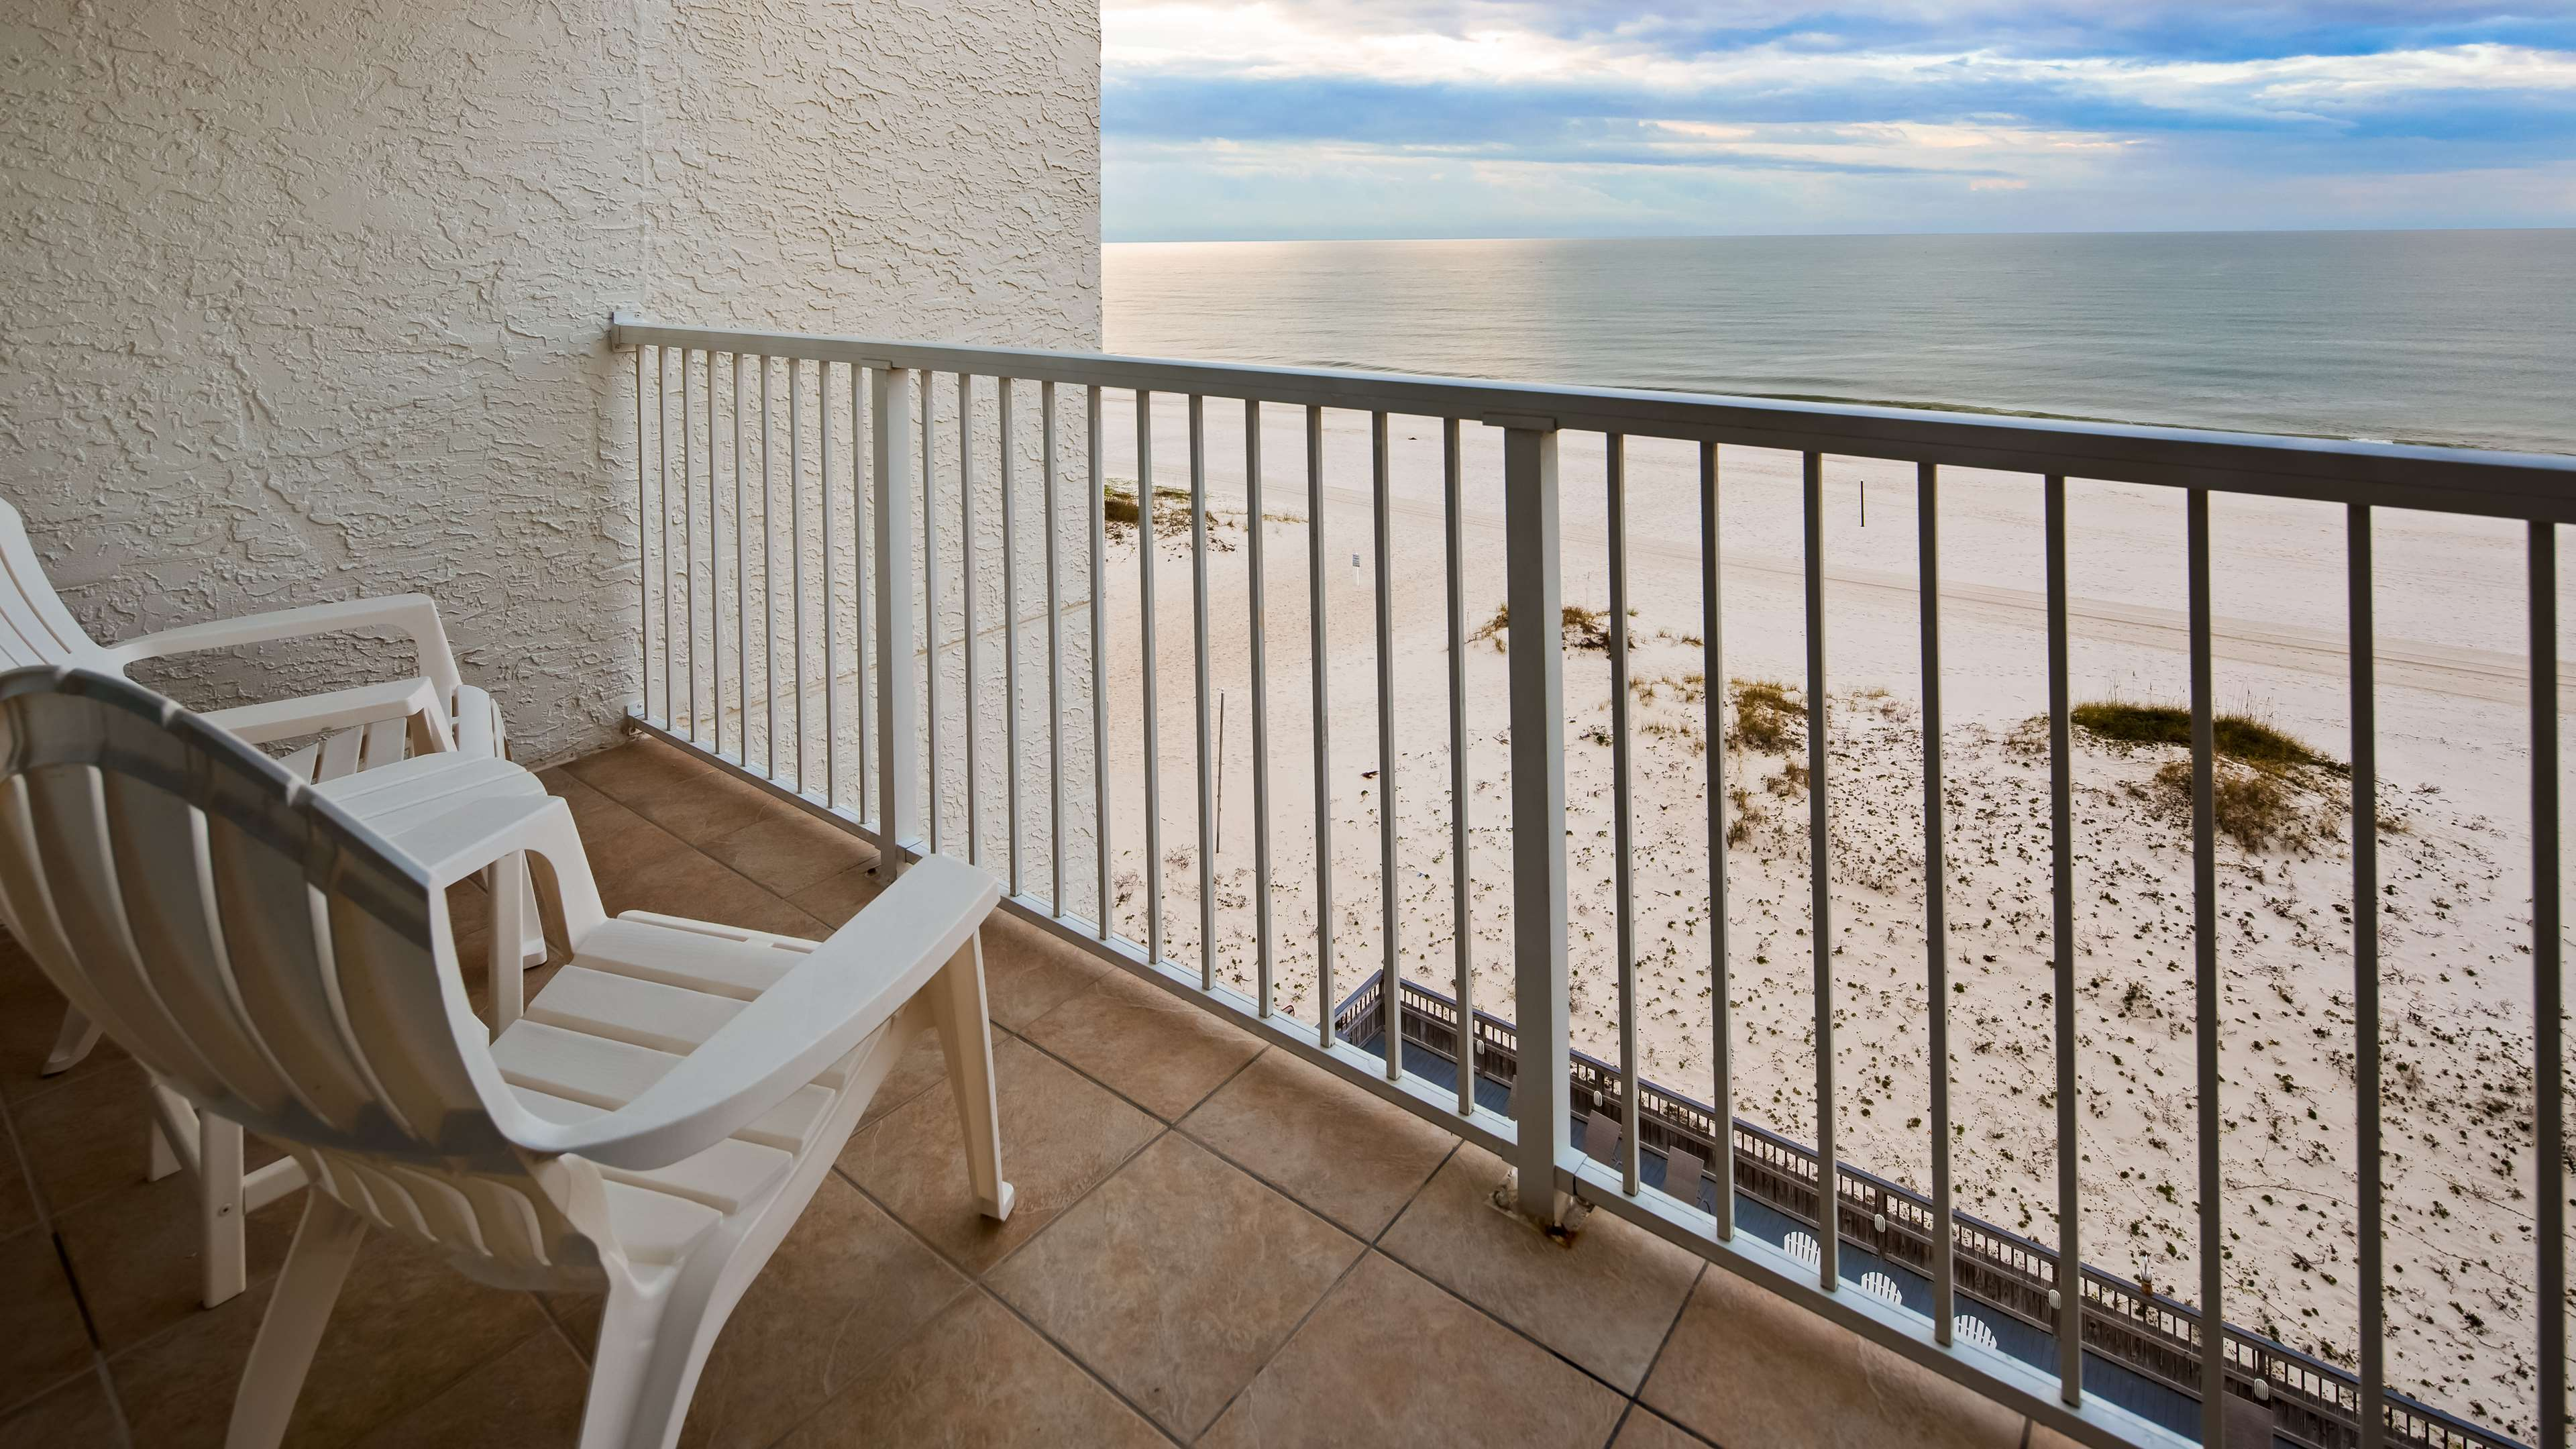 Best Western on the Beach image 18